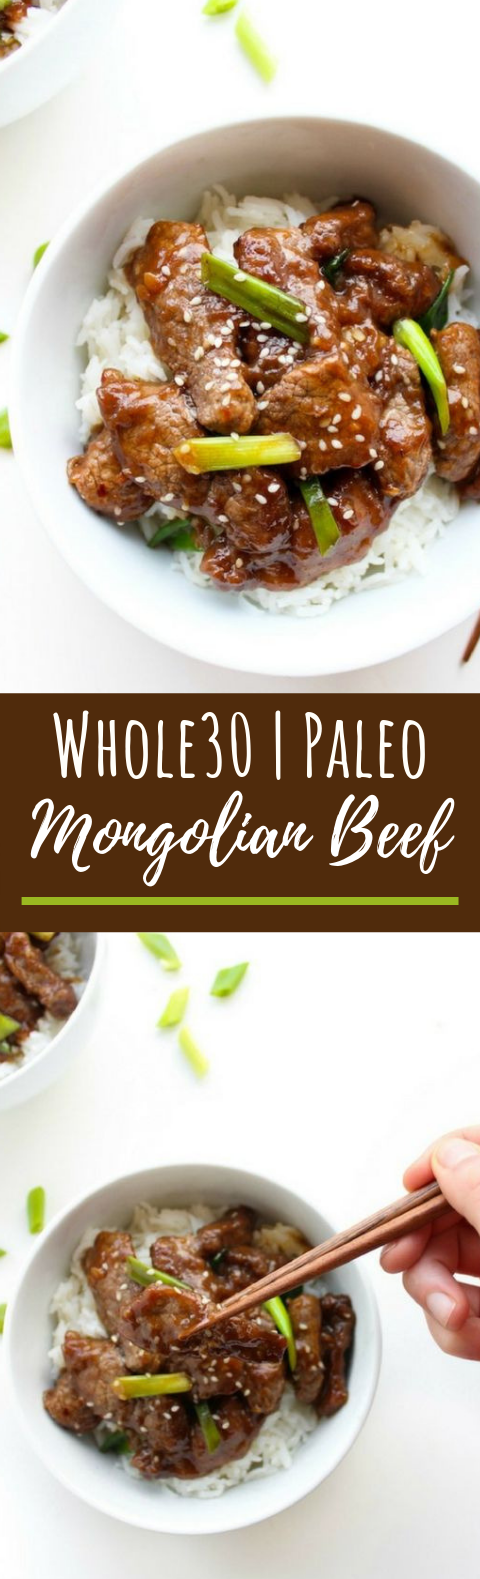 Paleo Mongolian Beef #whole30 #glutenfree